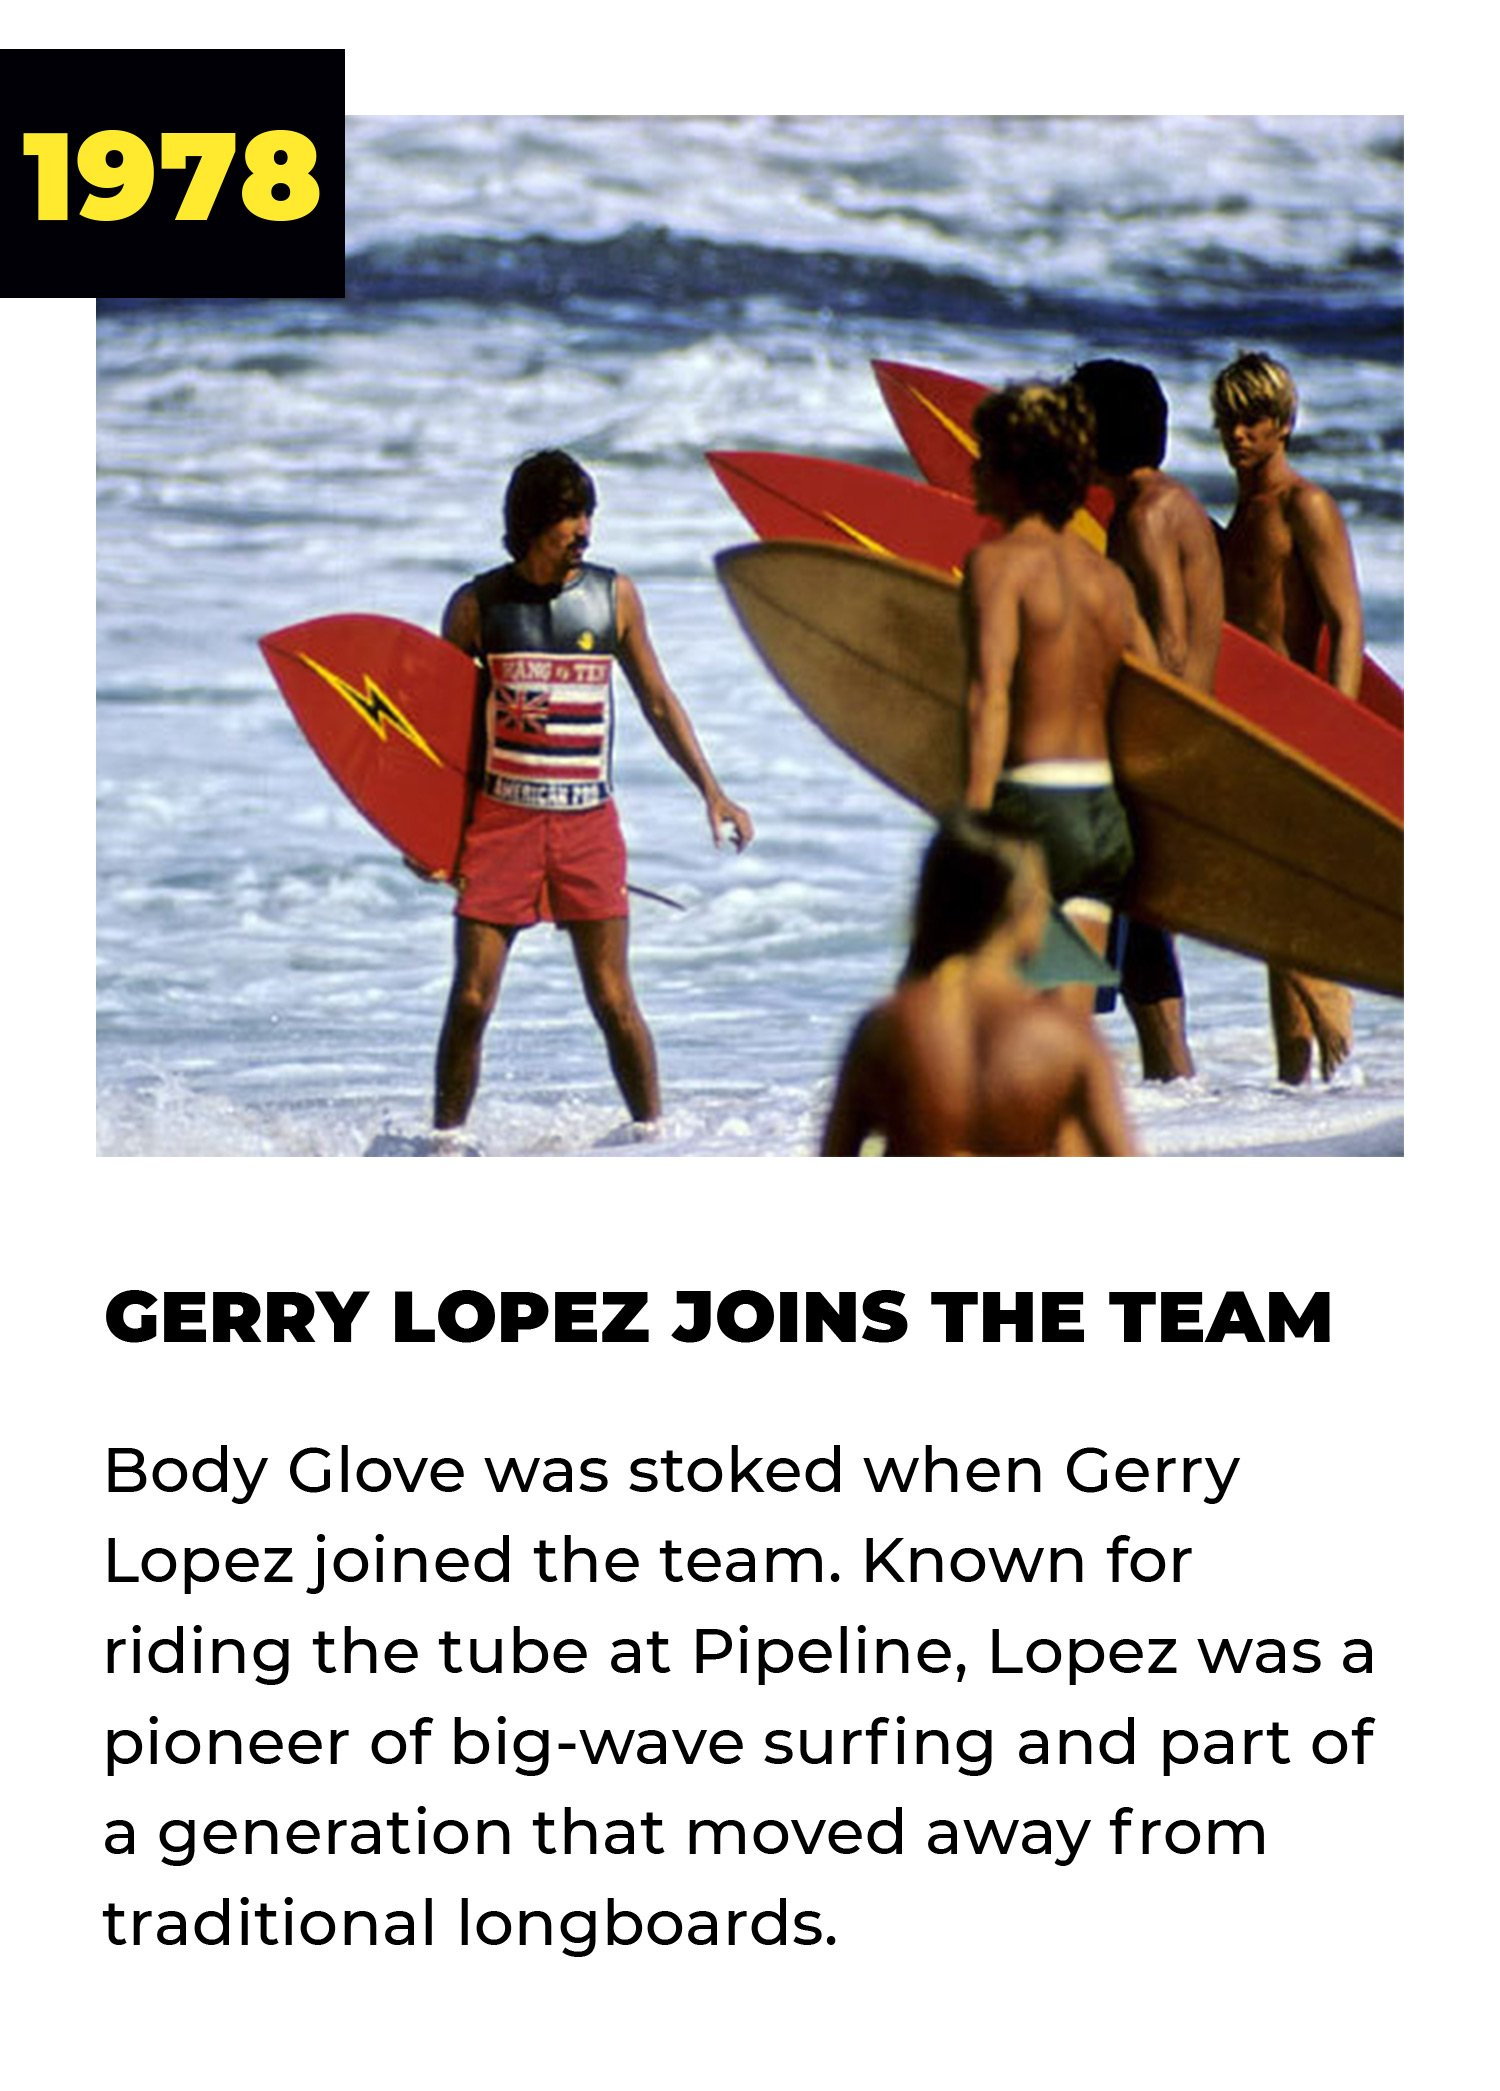 1978 | Gerry Lopez Joins the Team | Body Glove was stoked when Gerry Lopez joined the team. Known for riding the tube at Pipeline, Lopez was a pioneer of big-wave surfing and part of a generation that moved away from traditional longboards.